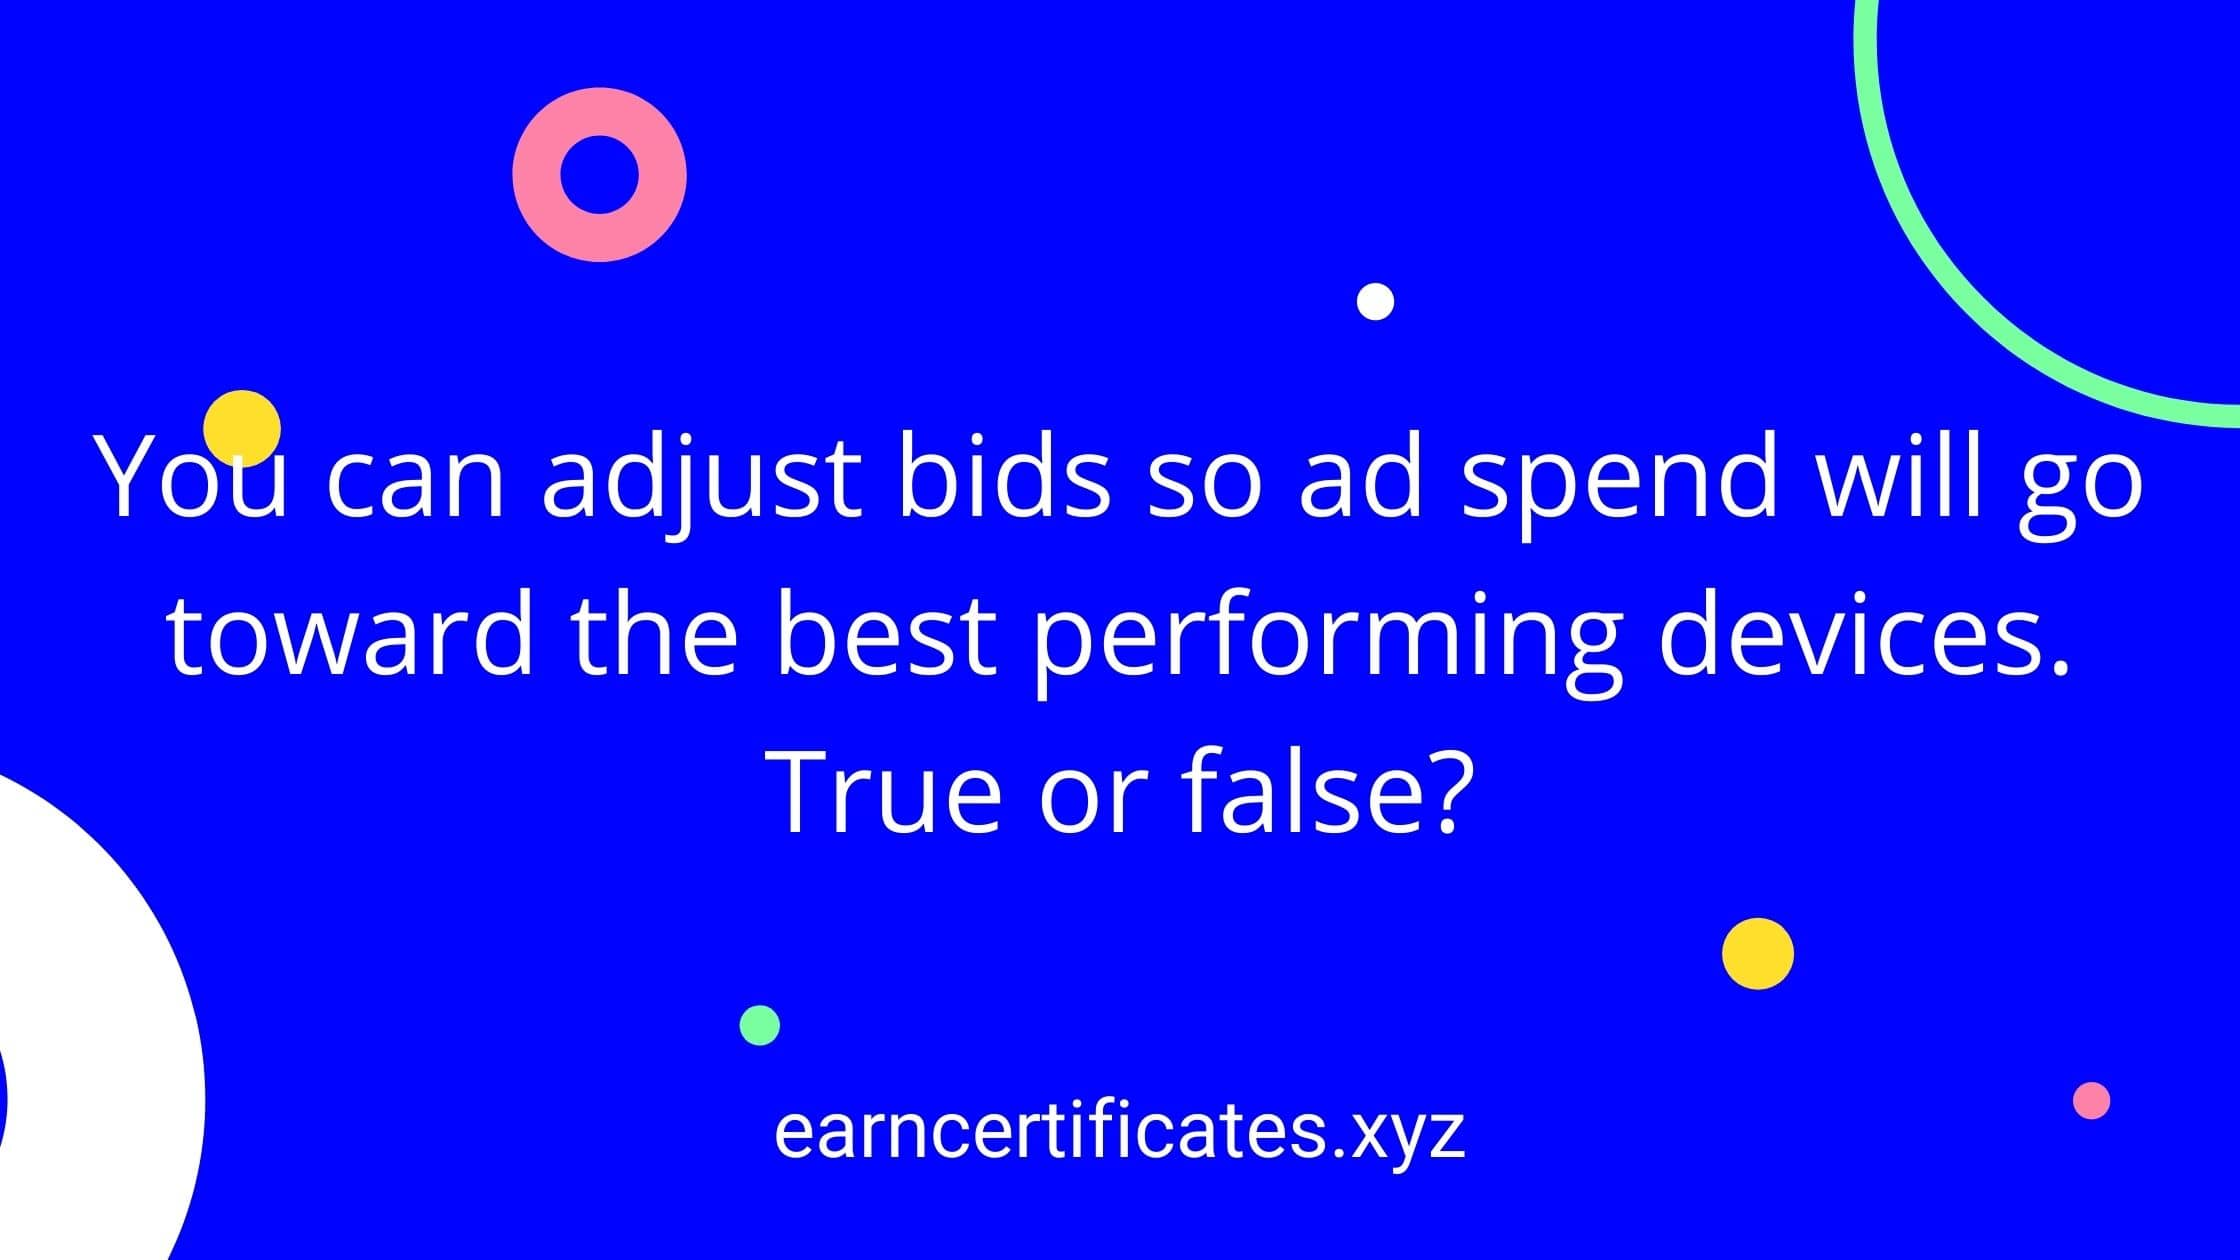 You can adjust bids so ad spend will go toward the best performing devices. True or false?